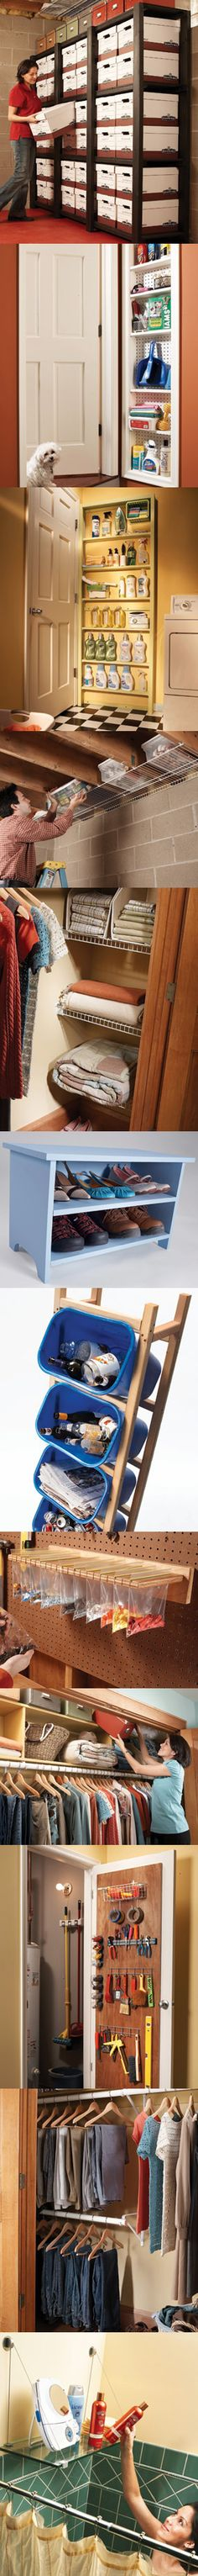 Some great organizing ideas!!